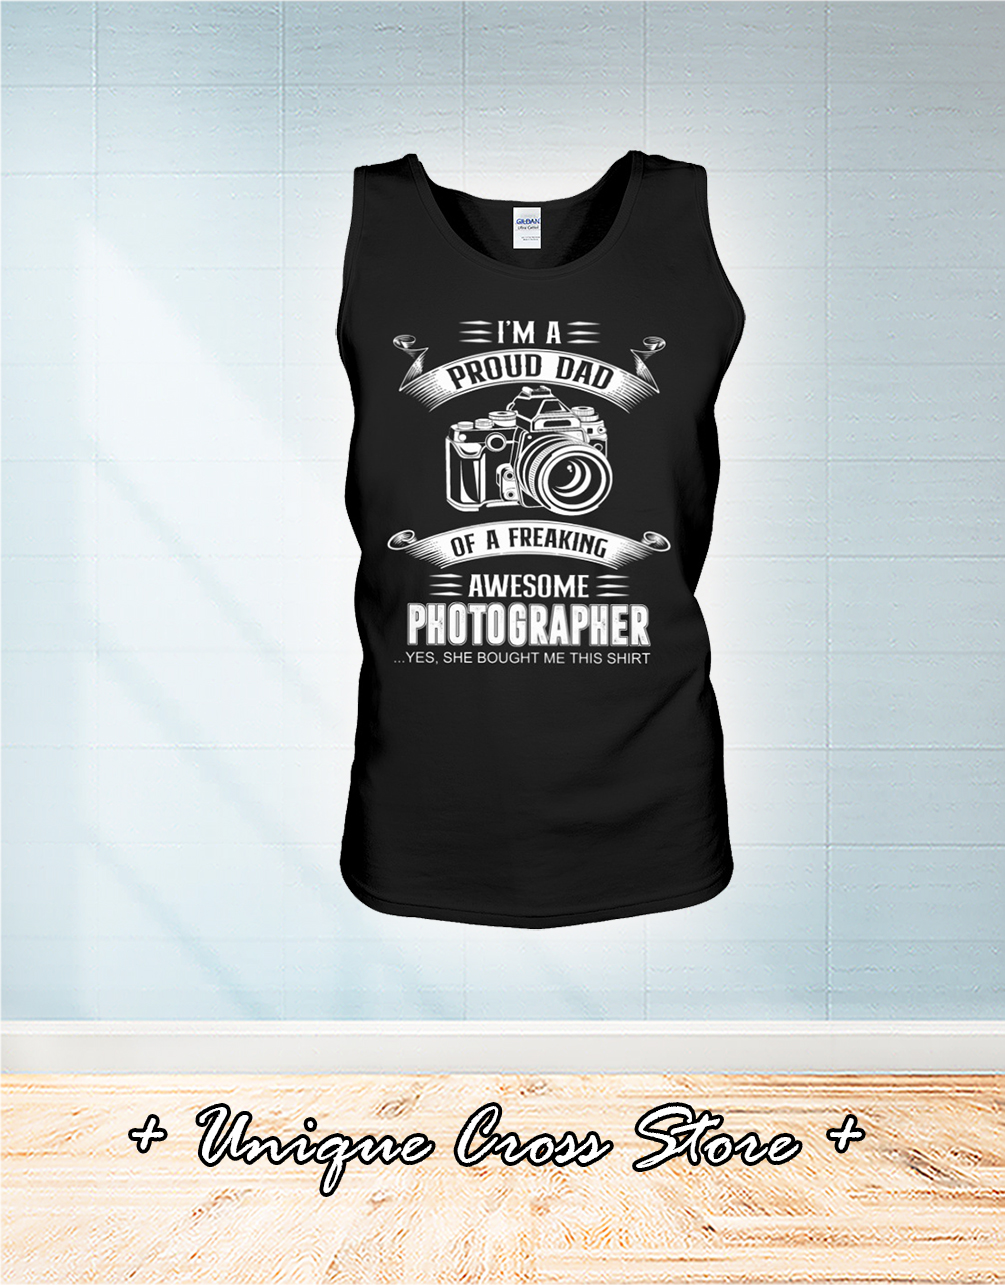 I'm A Proud Dad Of A Freaking Awesome Photographer Shirt